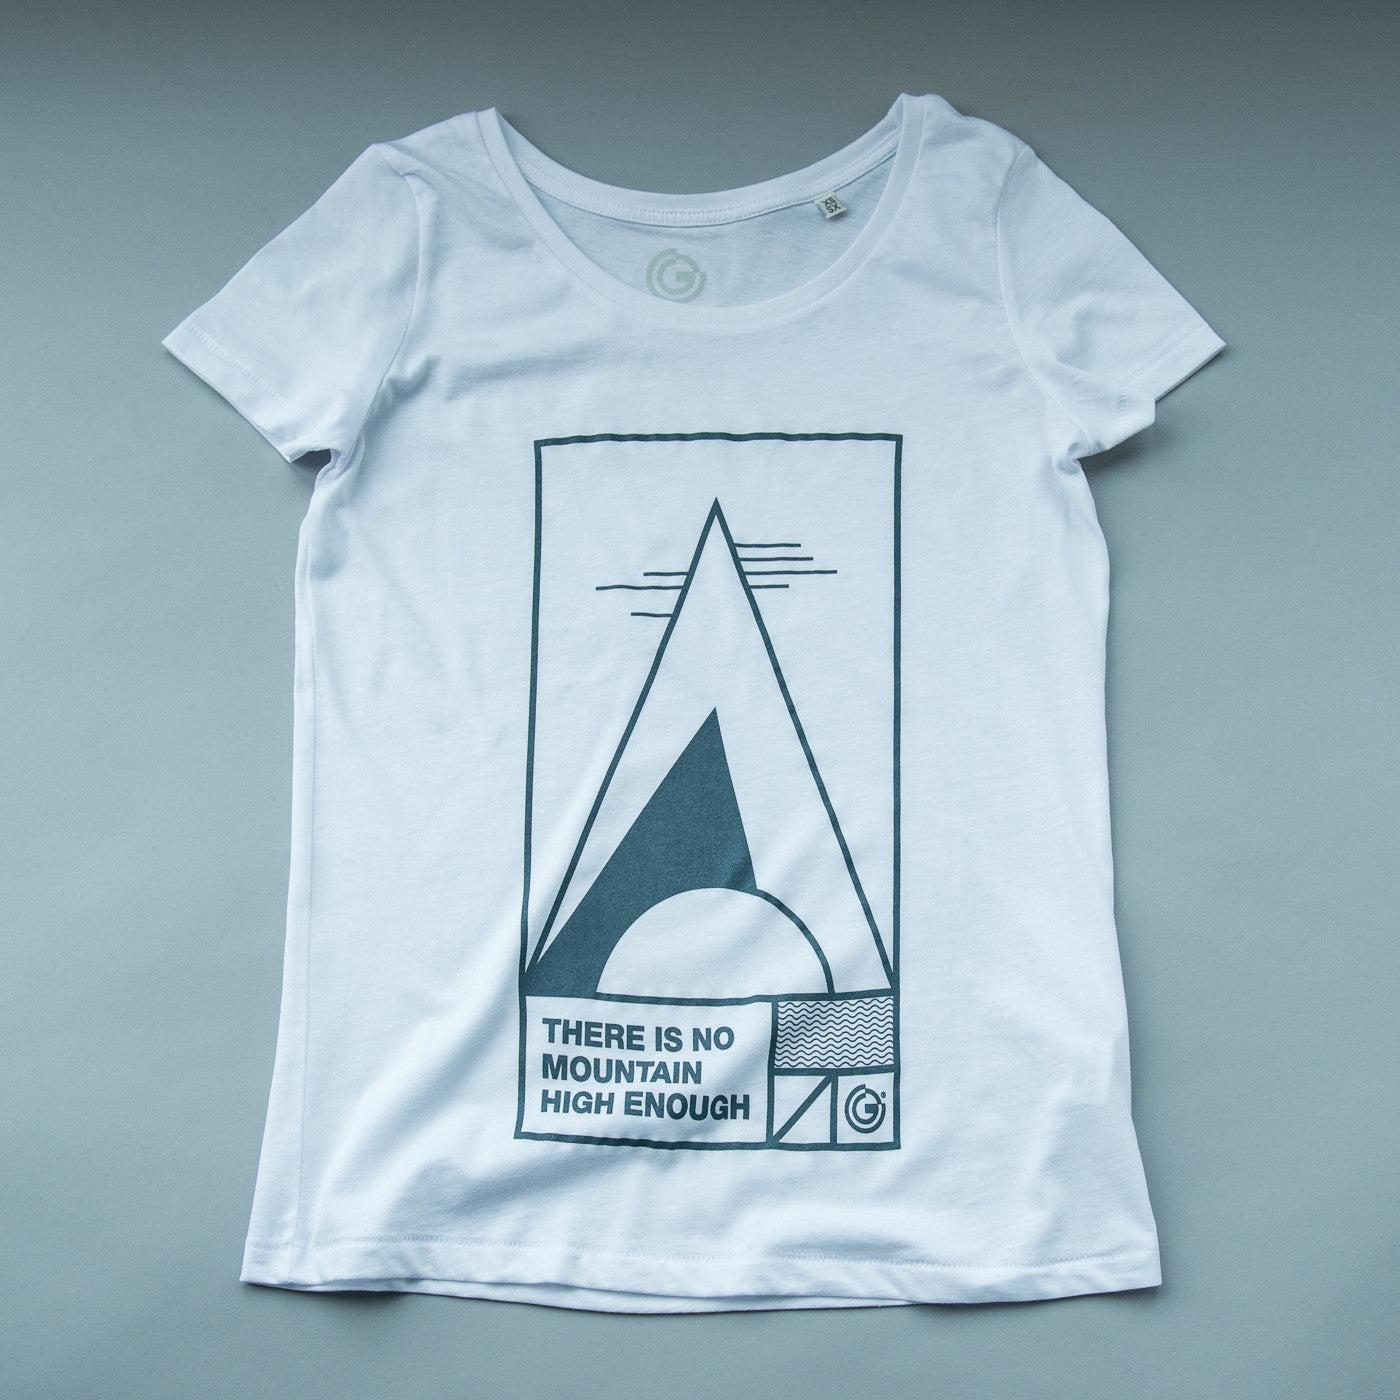 There is no mountain high enough, Womens Organic Tee from OFFGRID Clothing